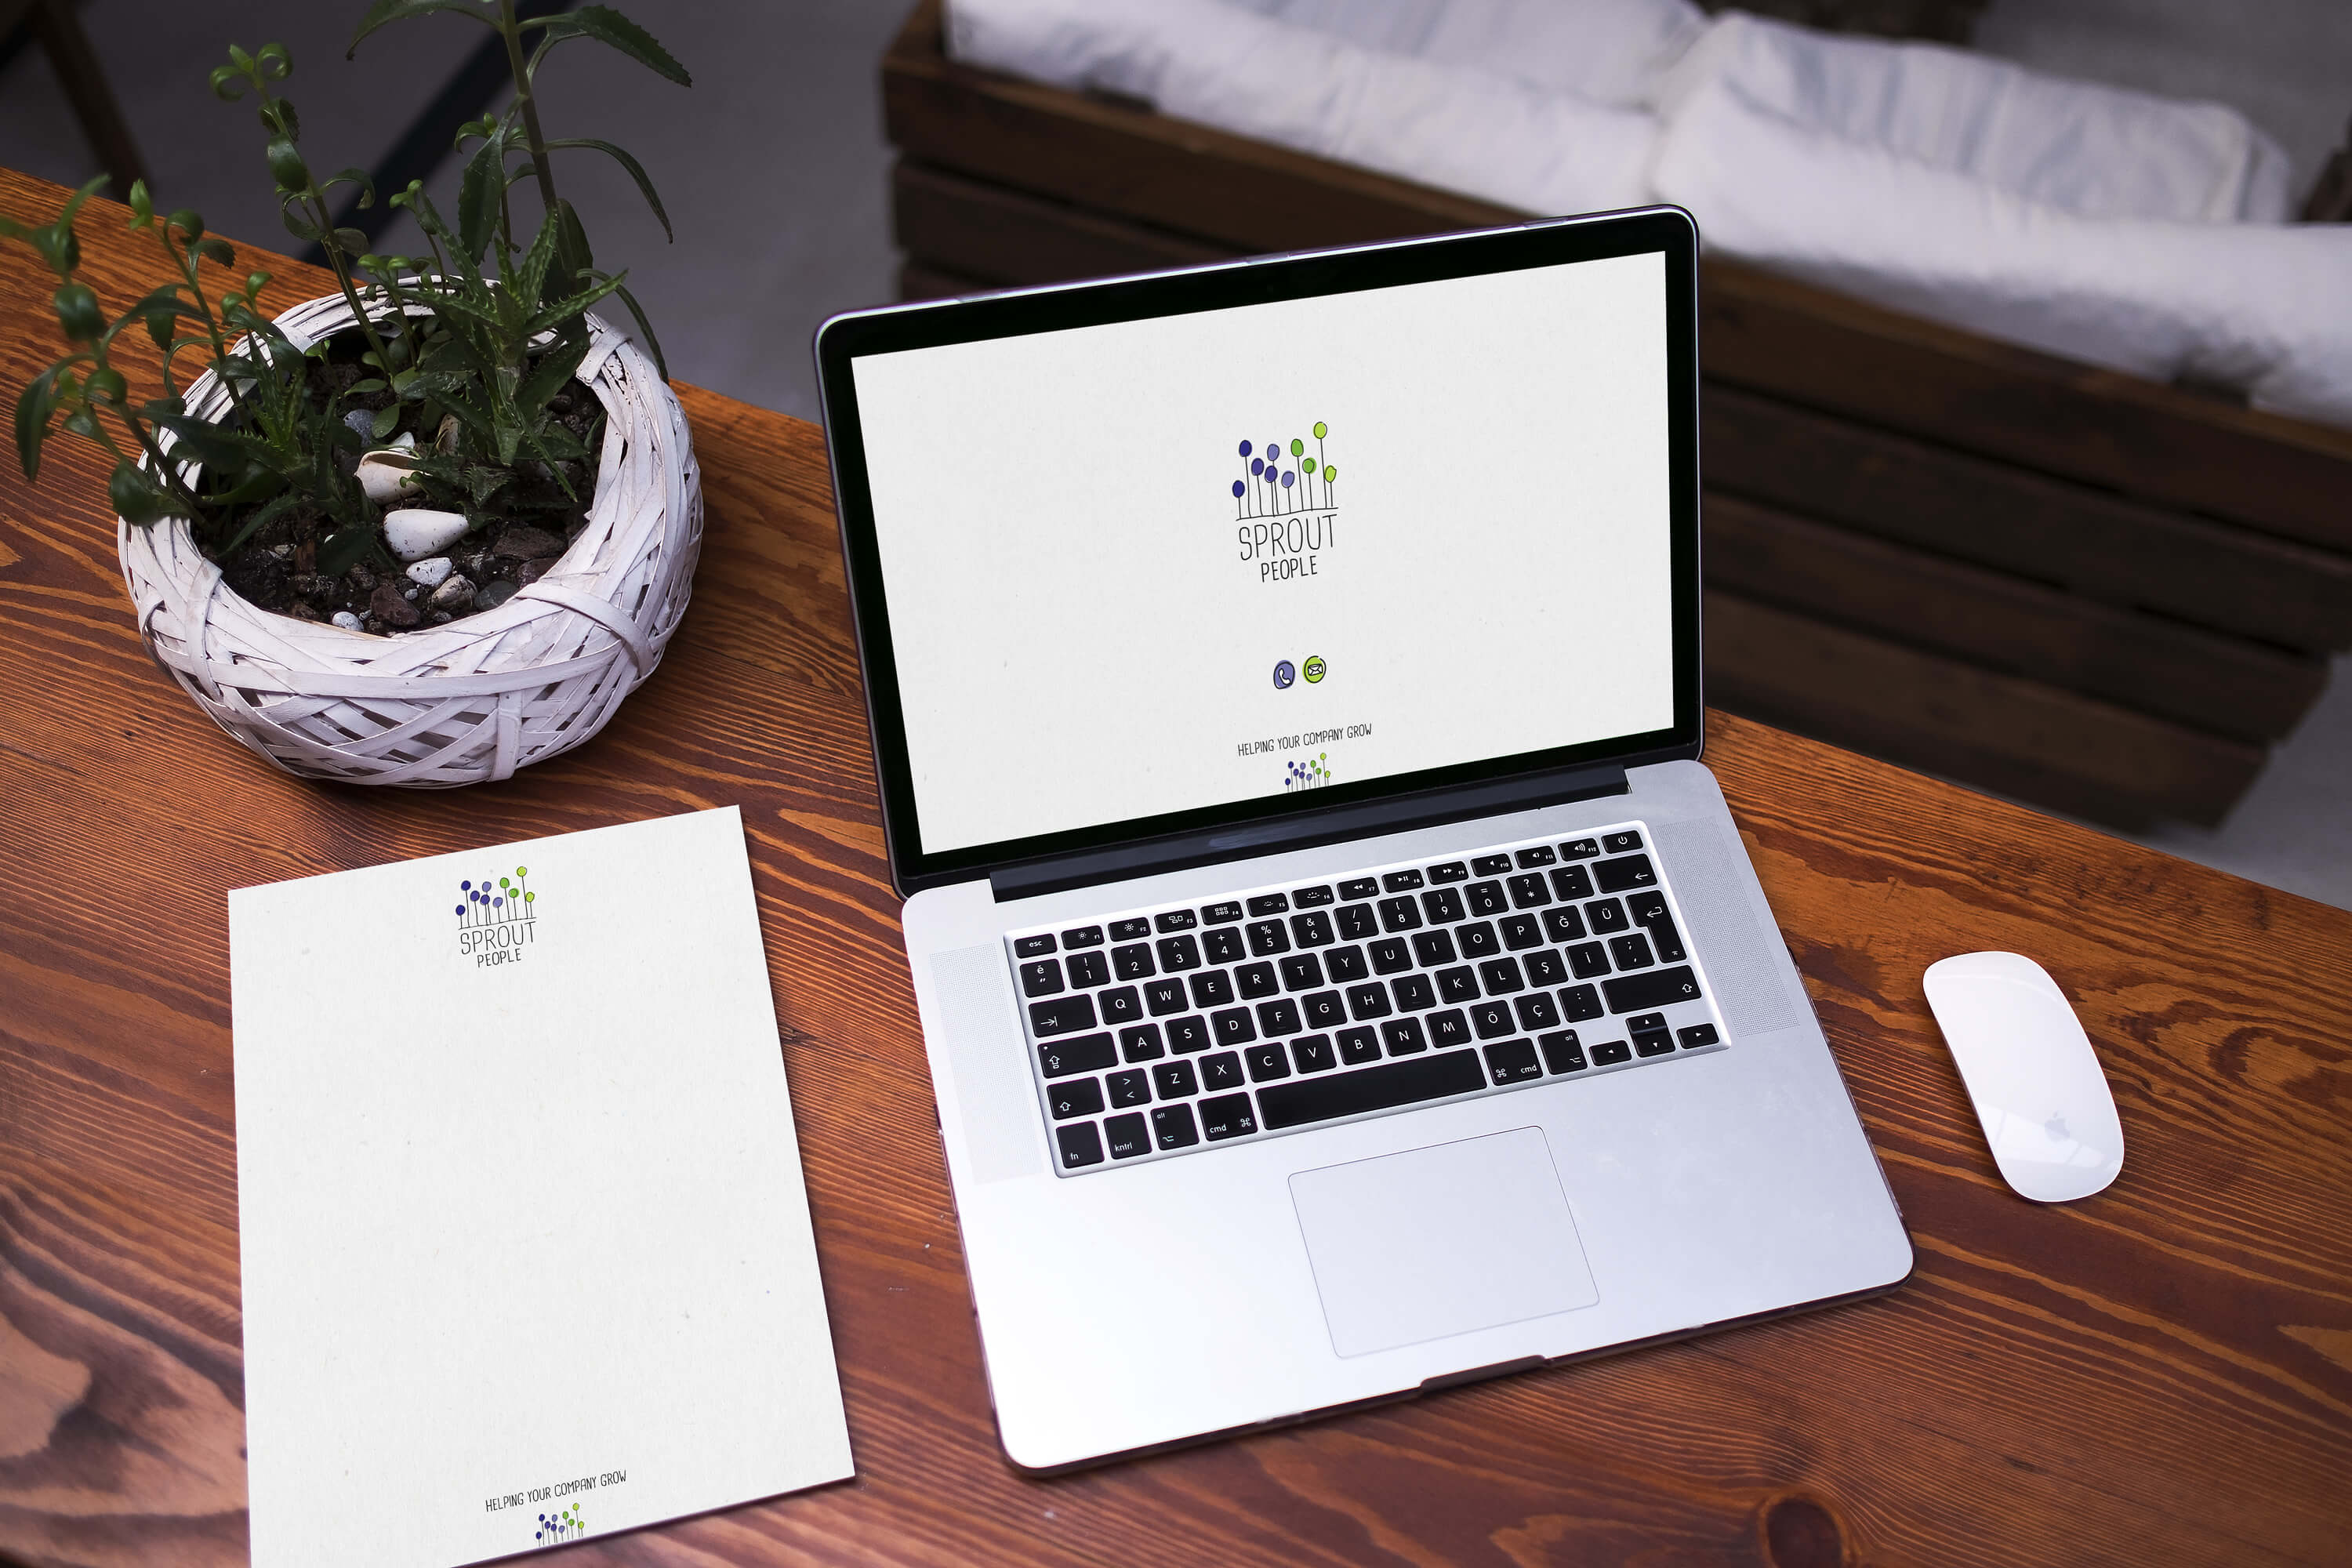 A laptop and letterhead on a desk showing the Sprout People brand identity